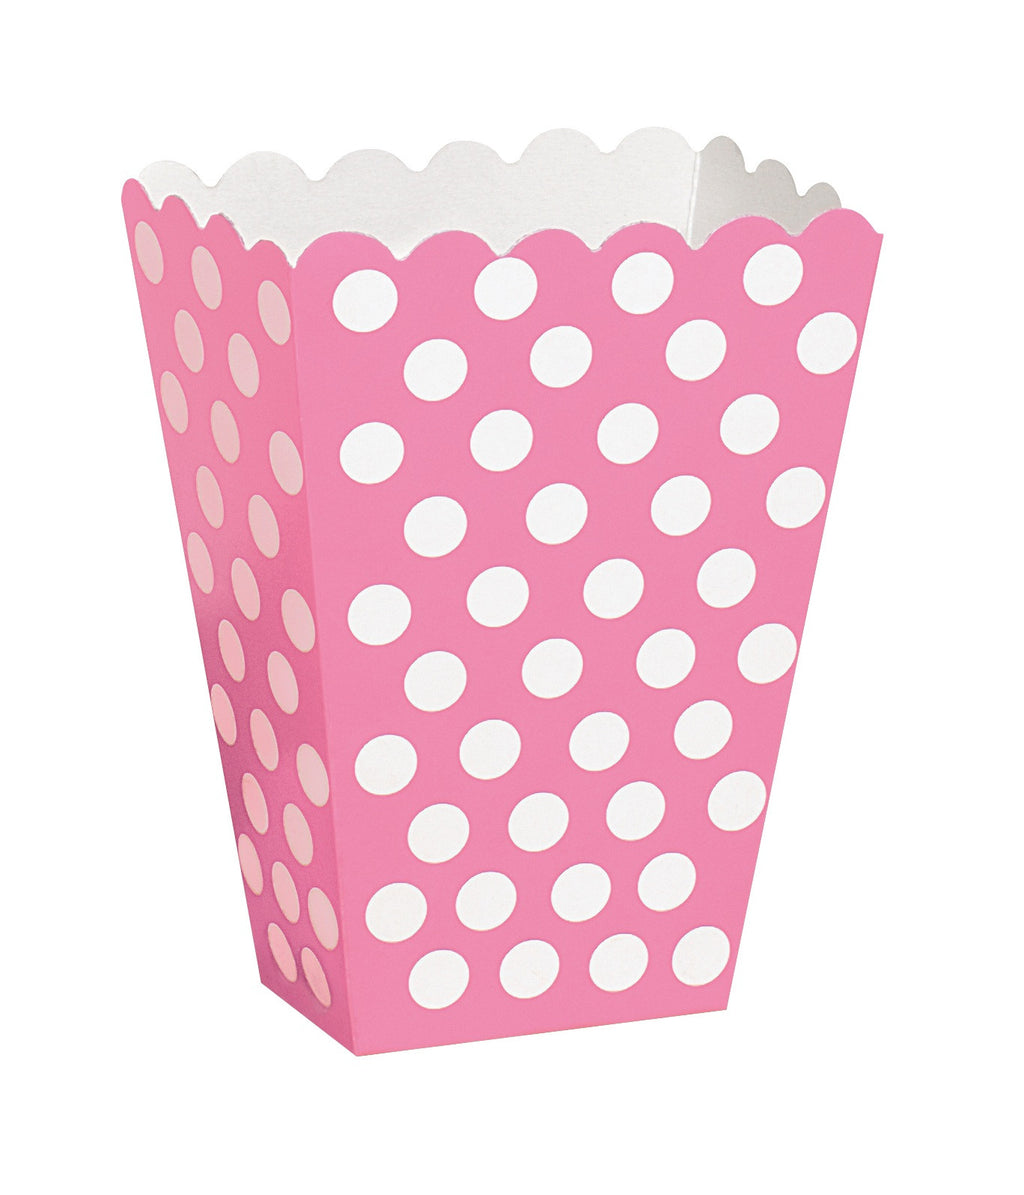 Hot Pink Polka Dot Treat Boxes - CLEARANCE - Uk Baby Shower Co ltd